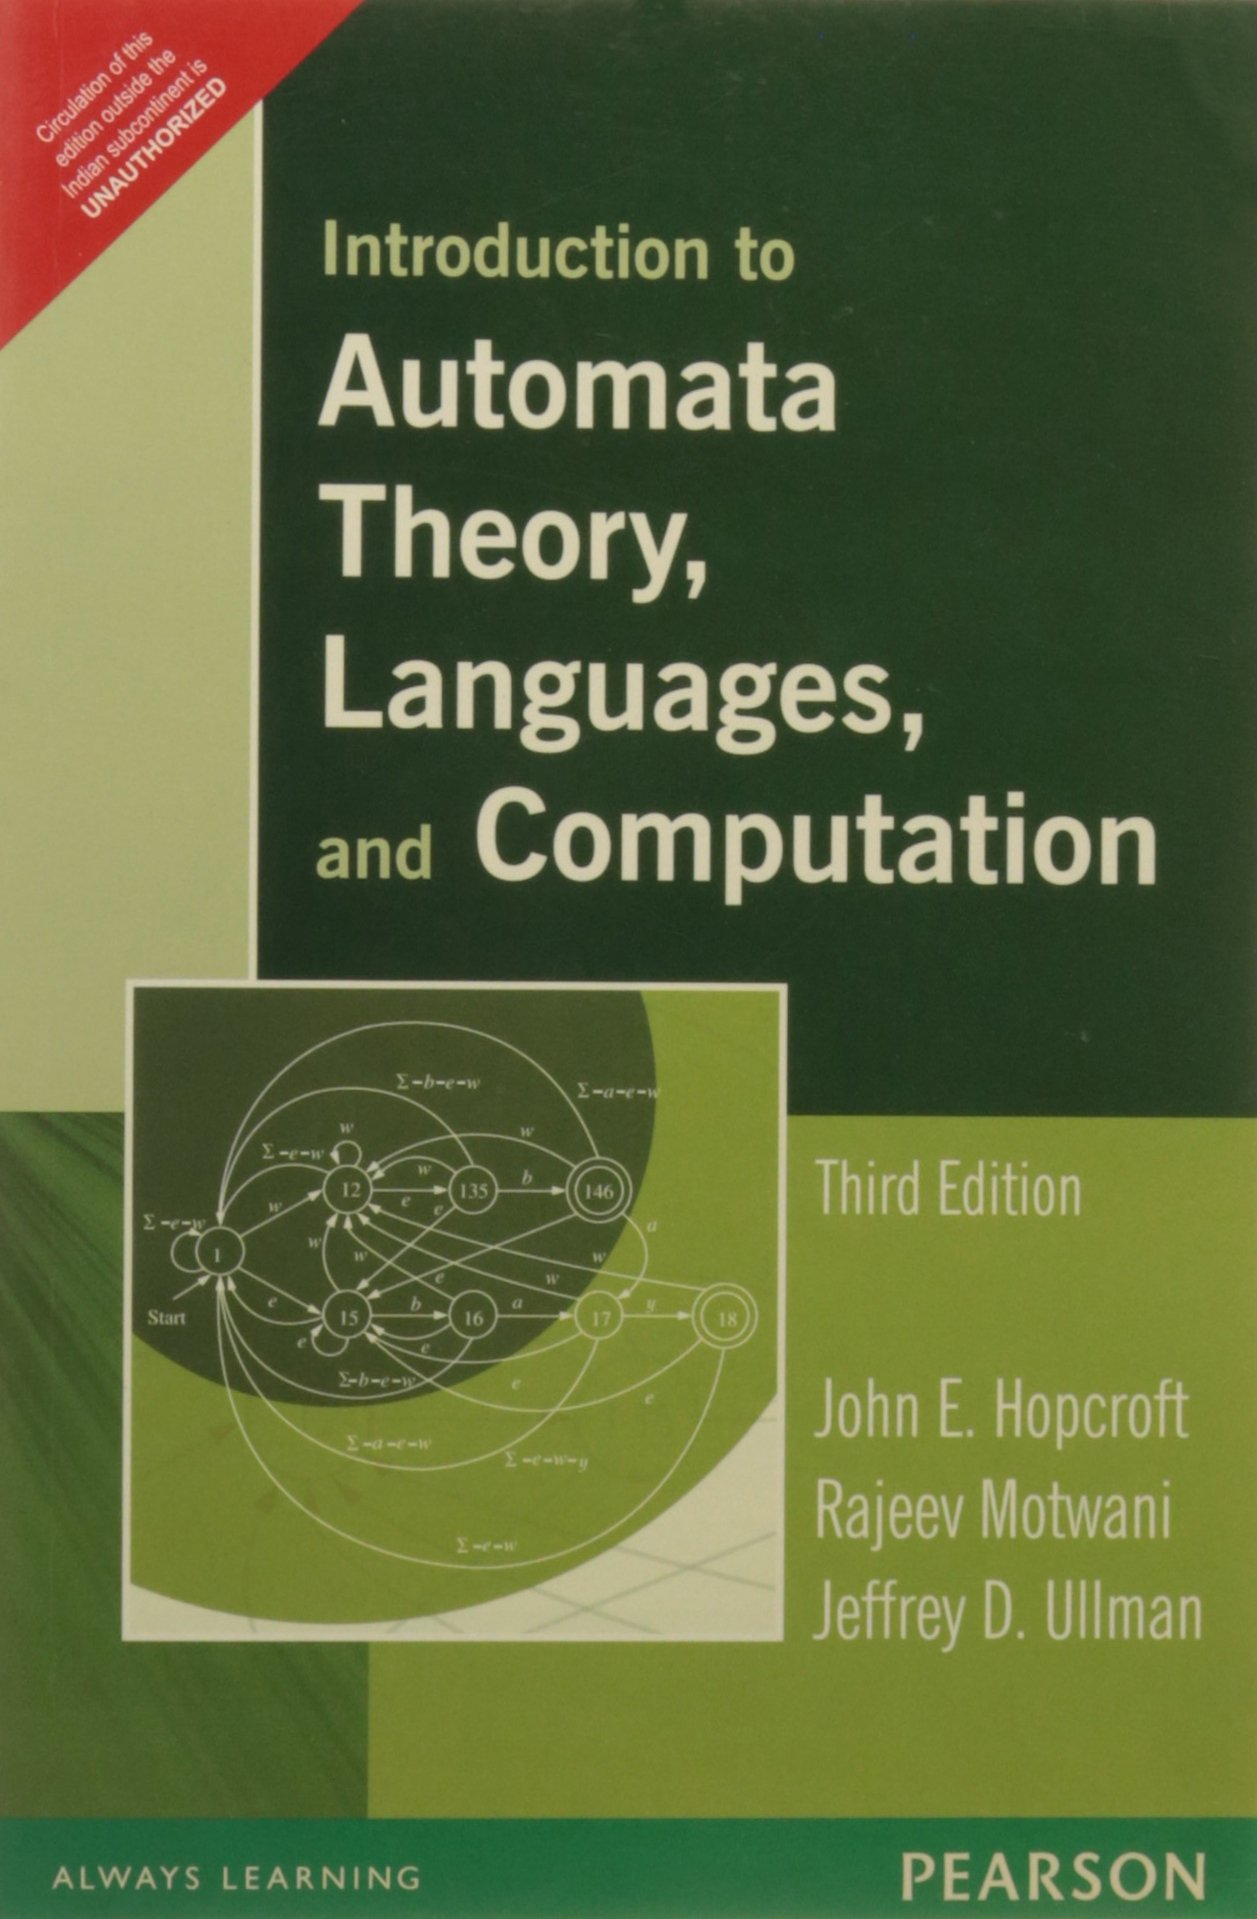 Introduction to Automata Theory, Languages, and Computation by Pearson India